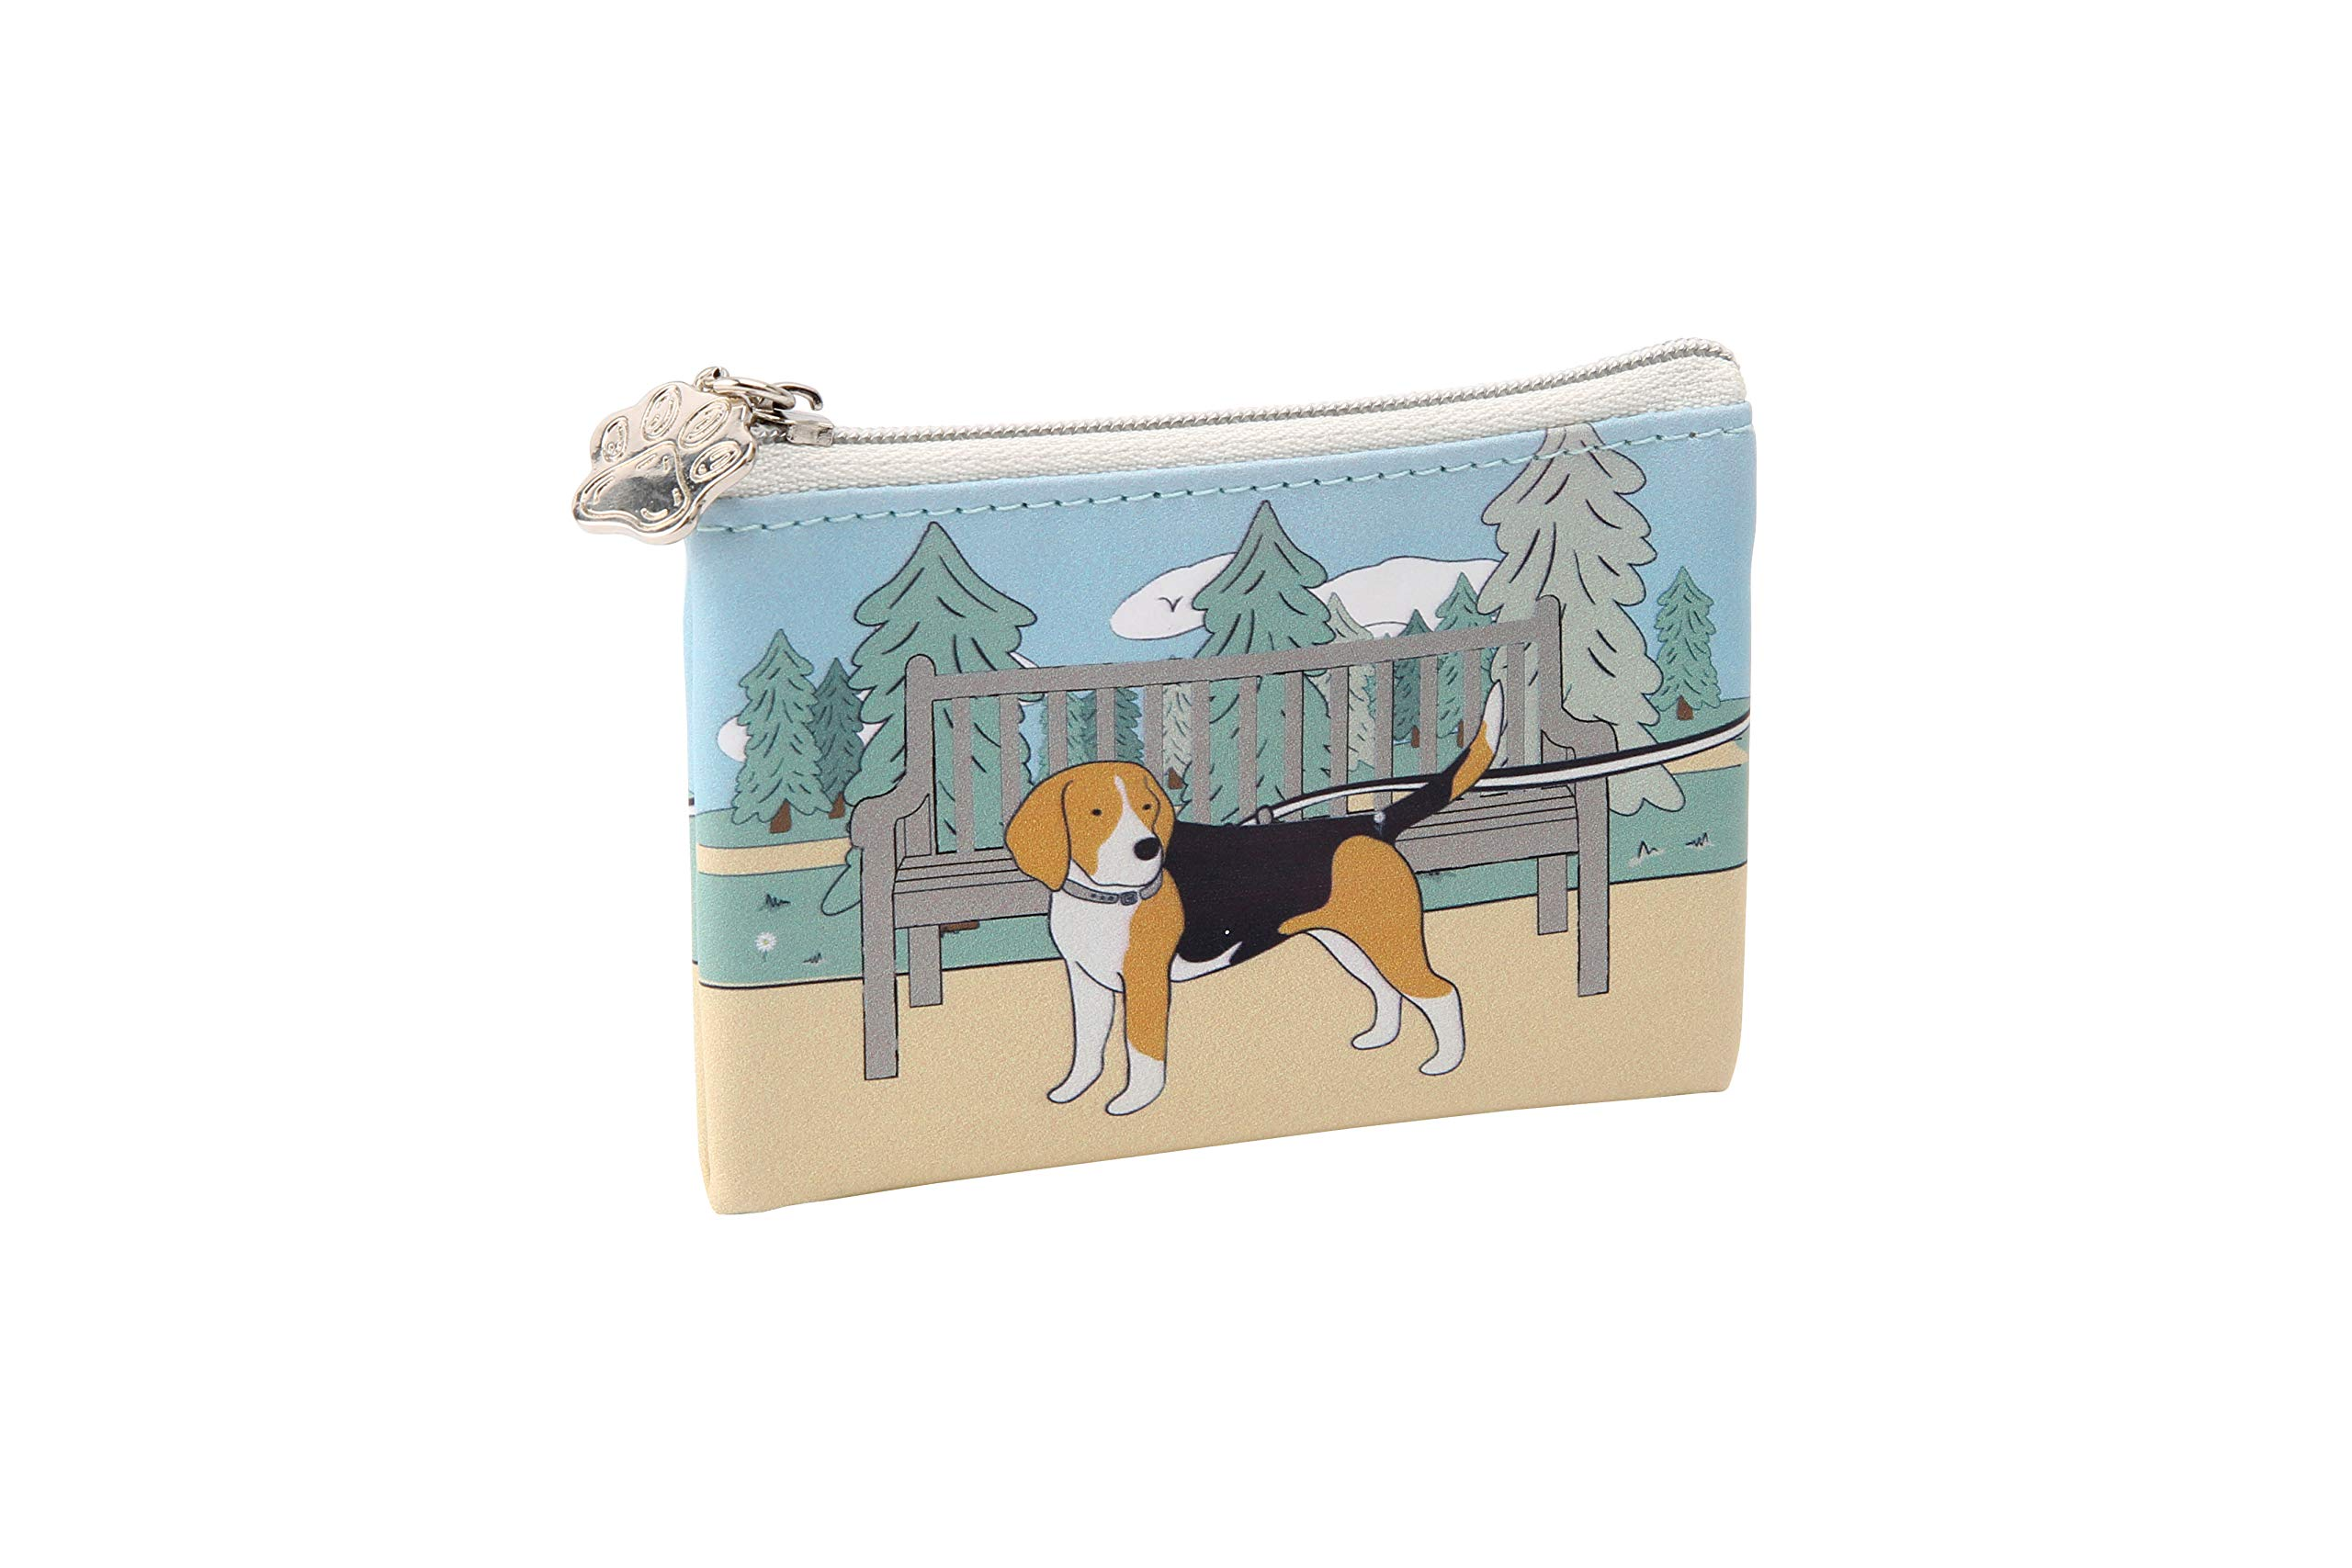 Paws for Thought Beagle Dog Coin Purse – GB02483